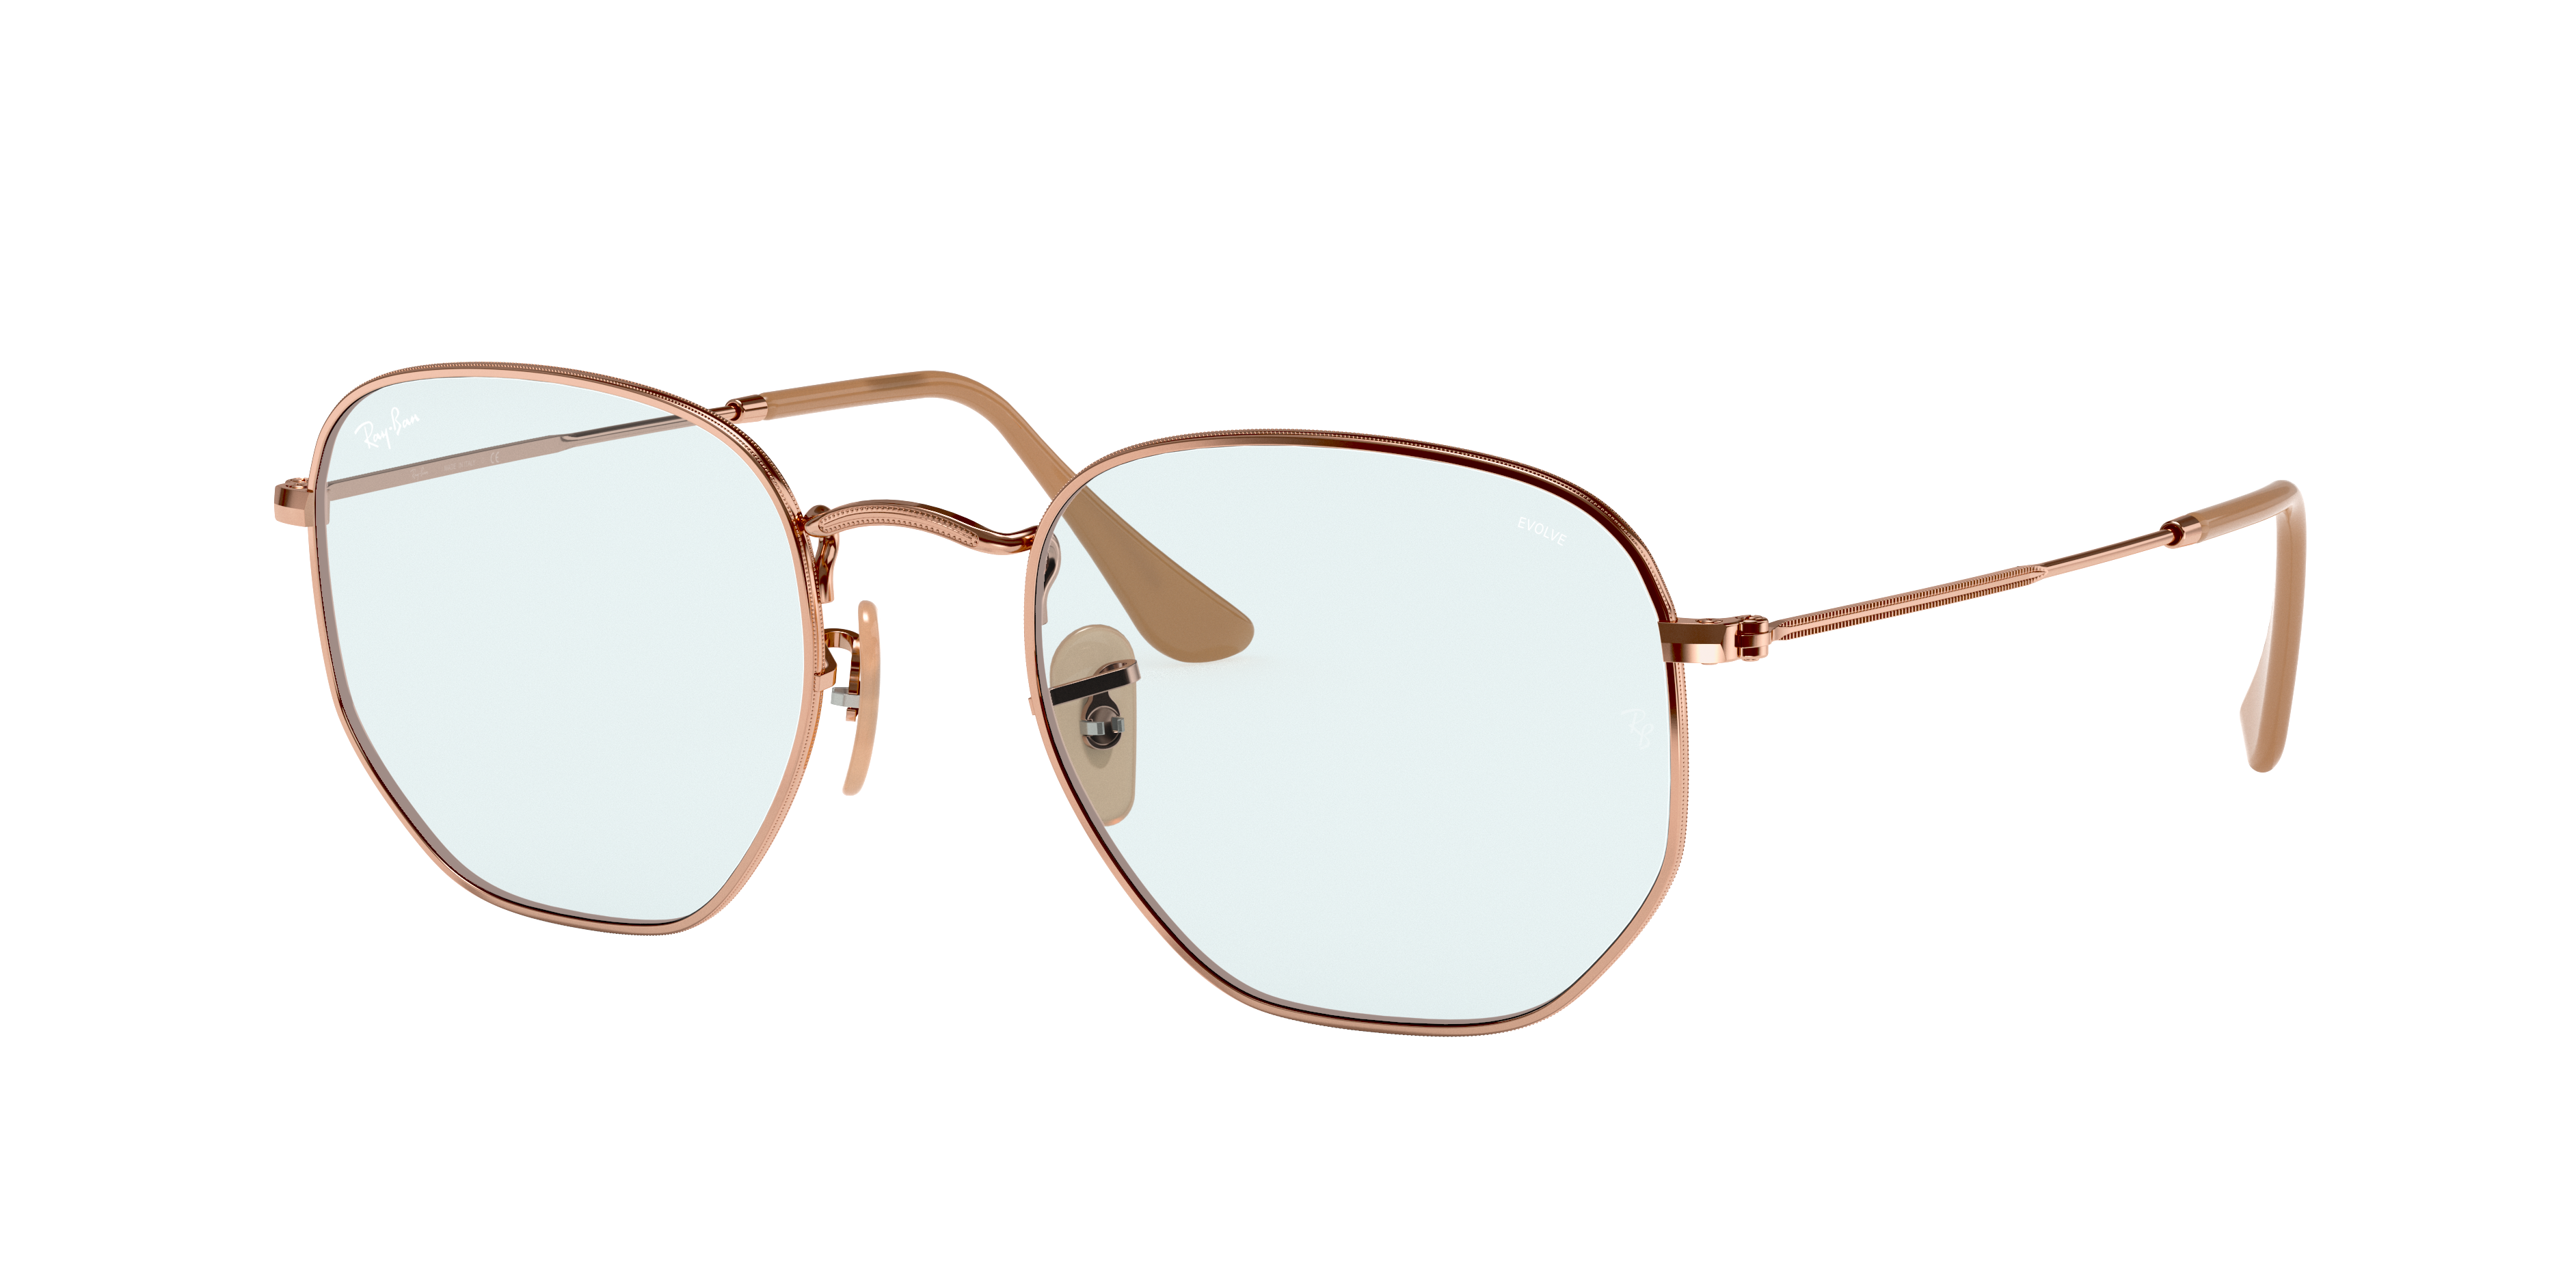 Ray-Ban Hexagonal Washed Evolve Bronze-Copper, Blue Lenses - RB3548N